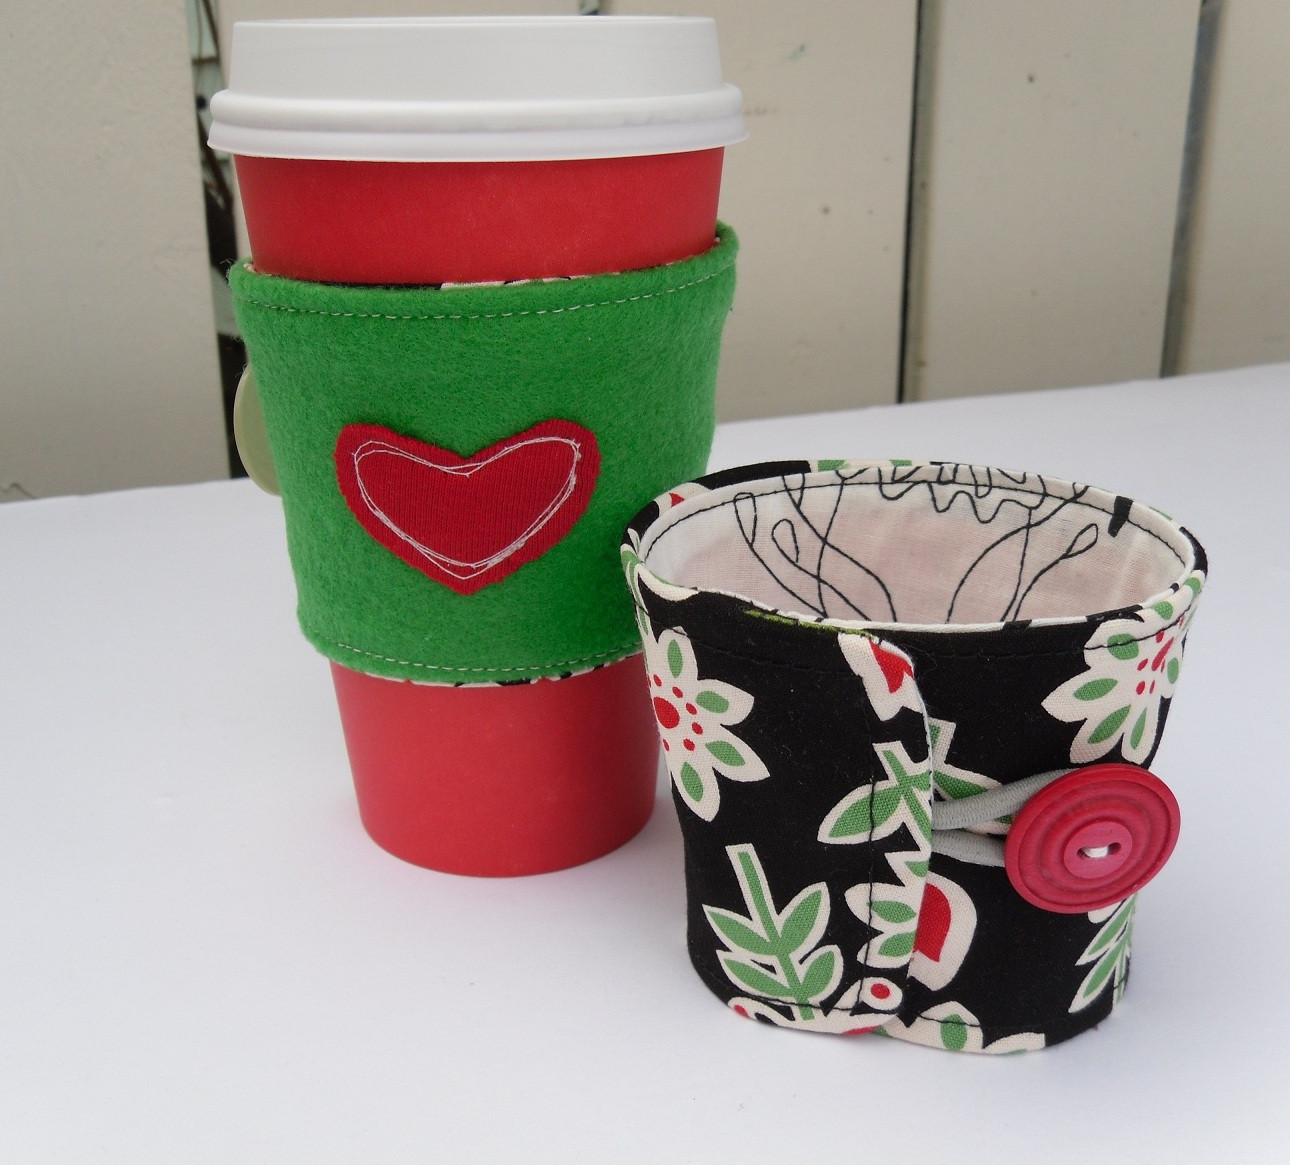 Best Of the Sewing Dork Make Your Own Coffee Cozy Coffee Cup Cozy Of Awesome 47 Images Coffee Cup Cozy